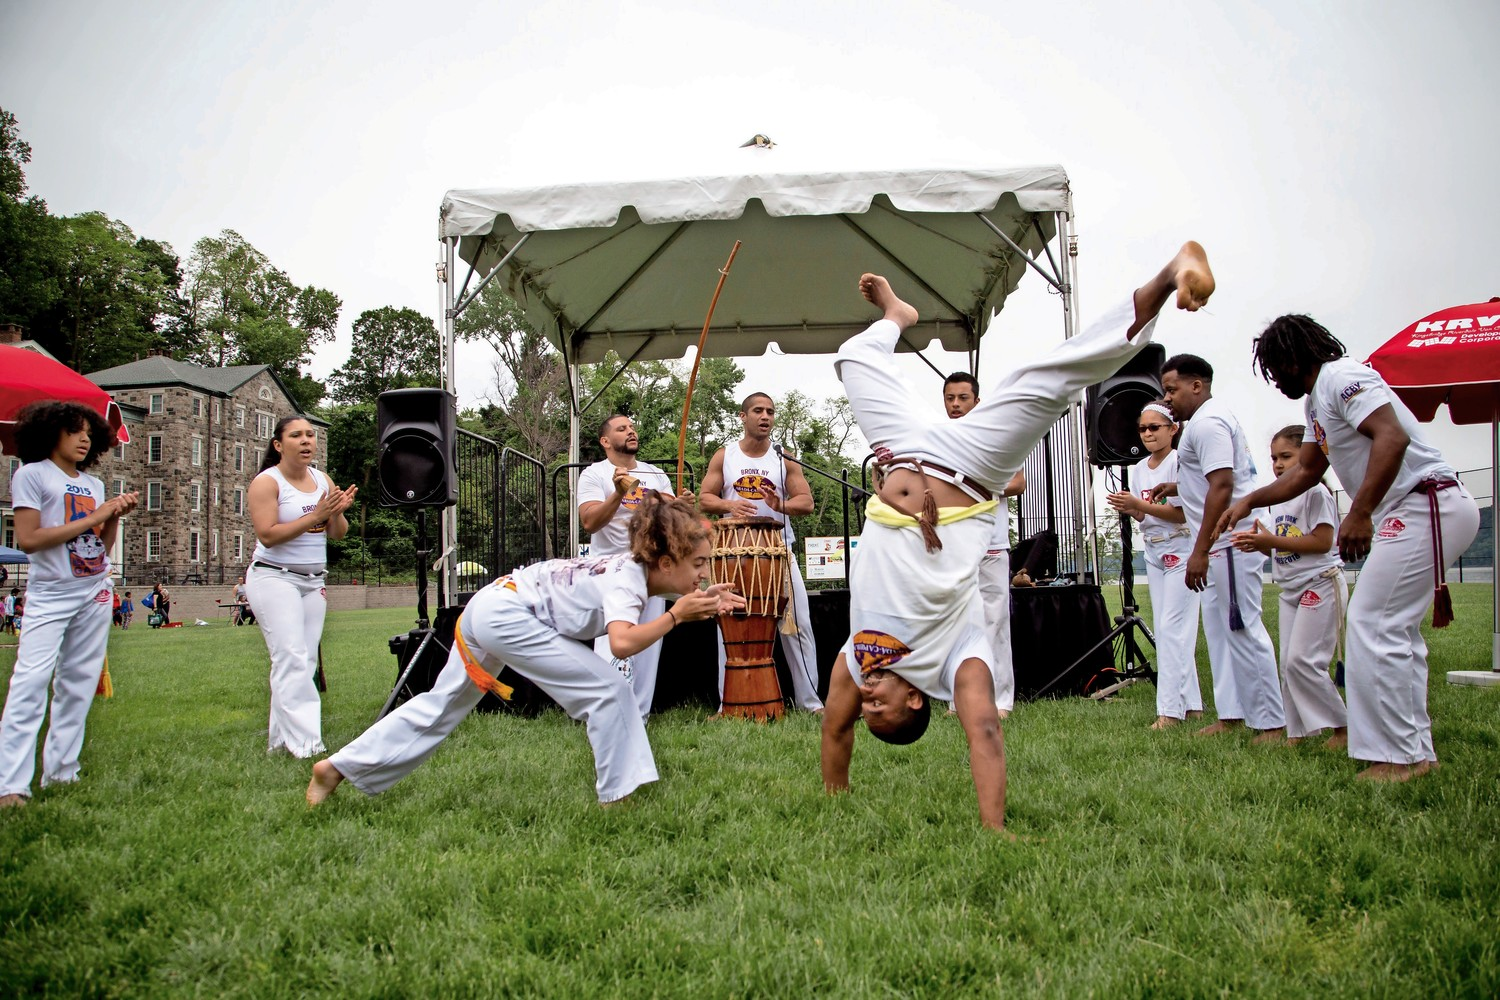 The Abada-Capoeira Bronx Cultural Arts Center performs capoeira, a Brazilian martial art that combines elements of dance, acrobatics, and self-defense techniques, during RiverFestBX.